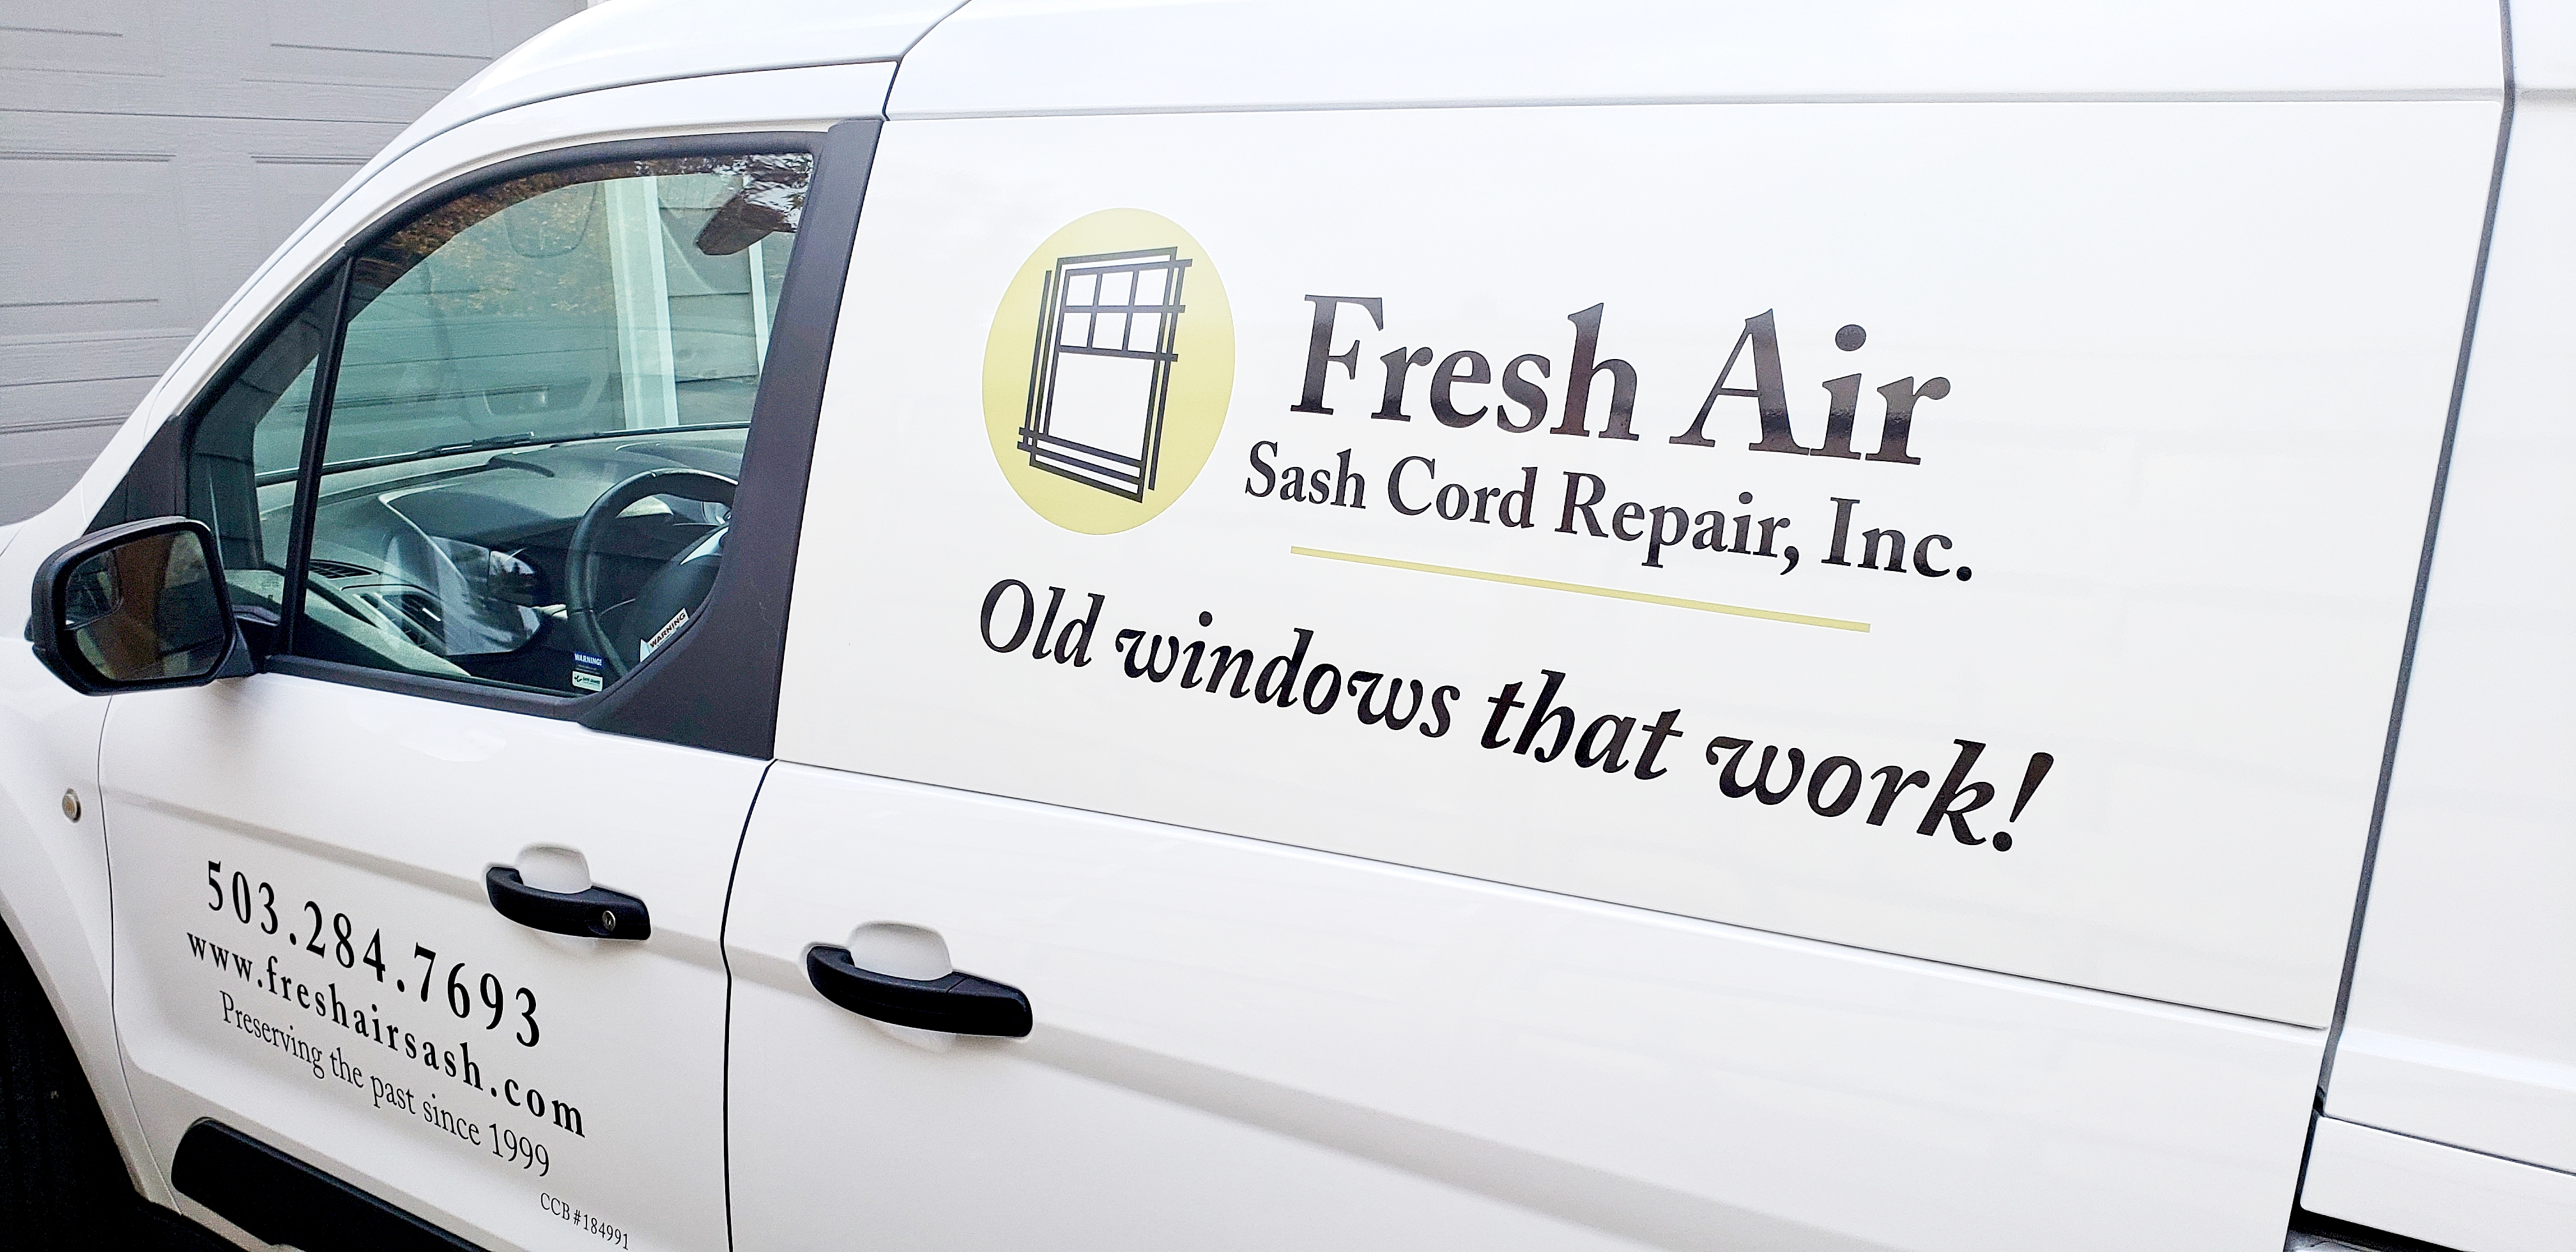 The Fresh Air van